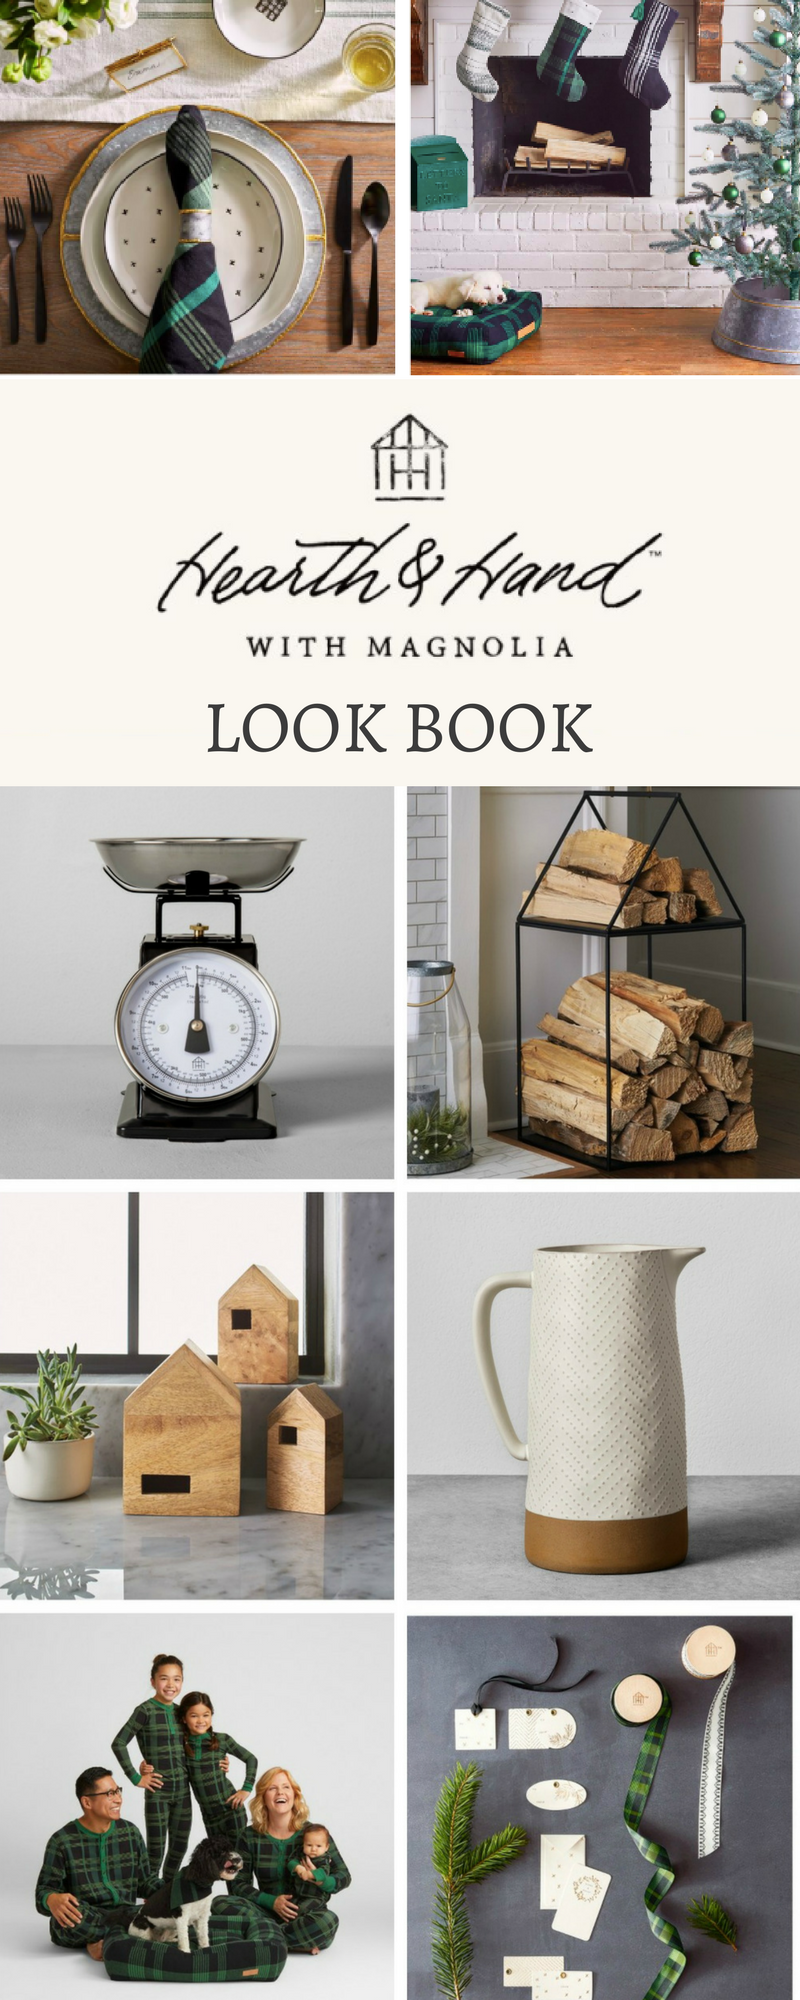 target magnolia hearth hand look book all things target